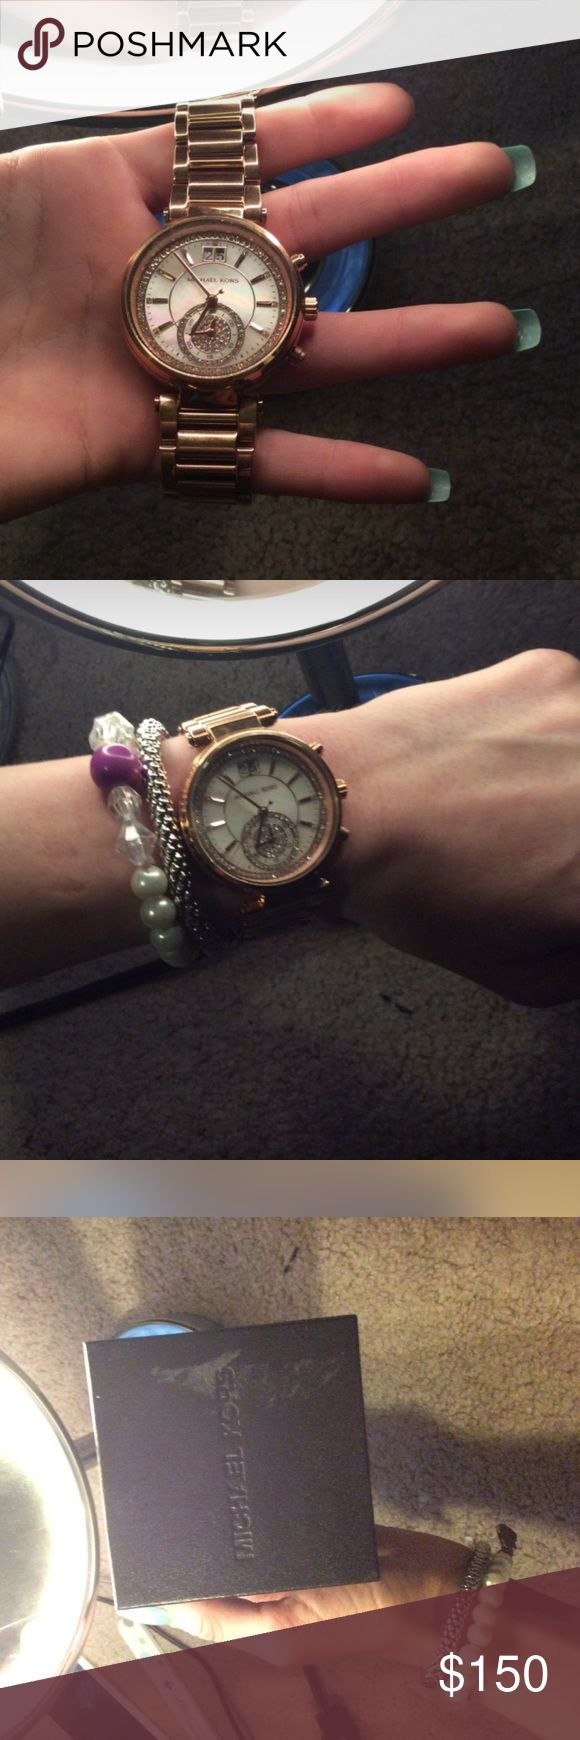 Watch marks on wrist - Rose Gold Authentic Michael Kors Watch Asking 150 Brand New With Box Never Worn No